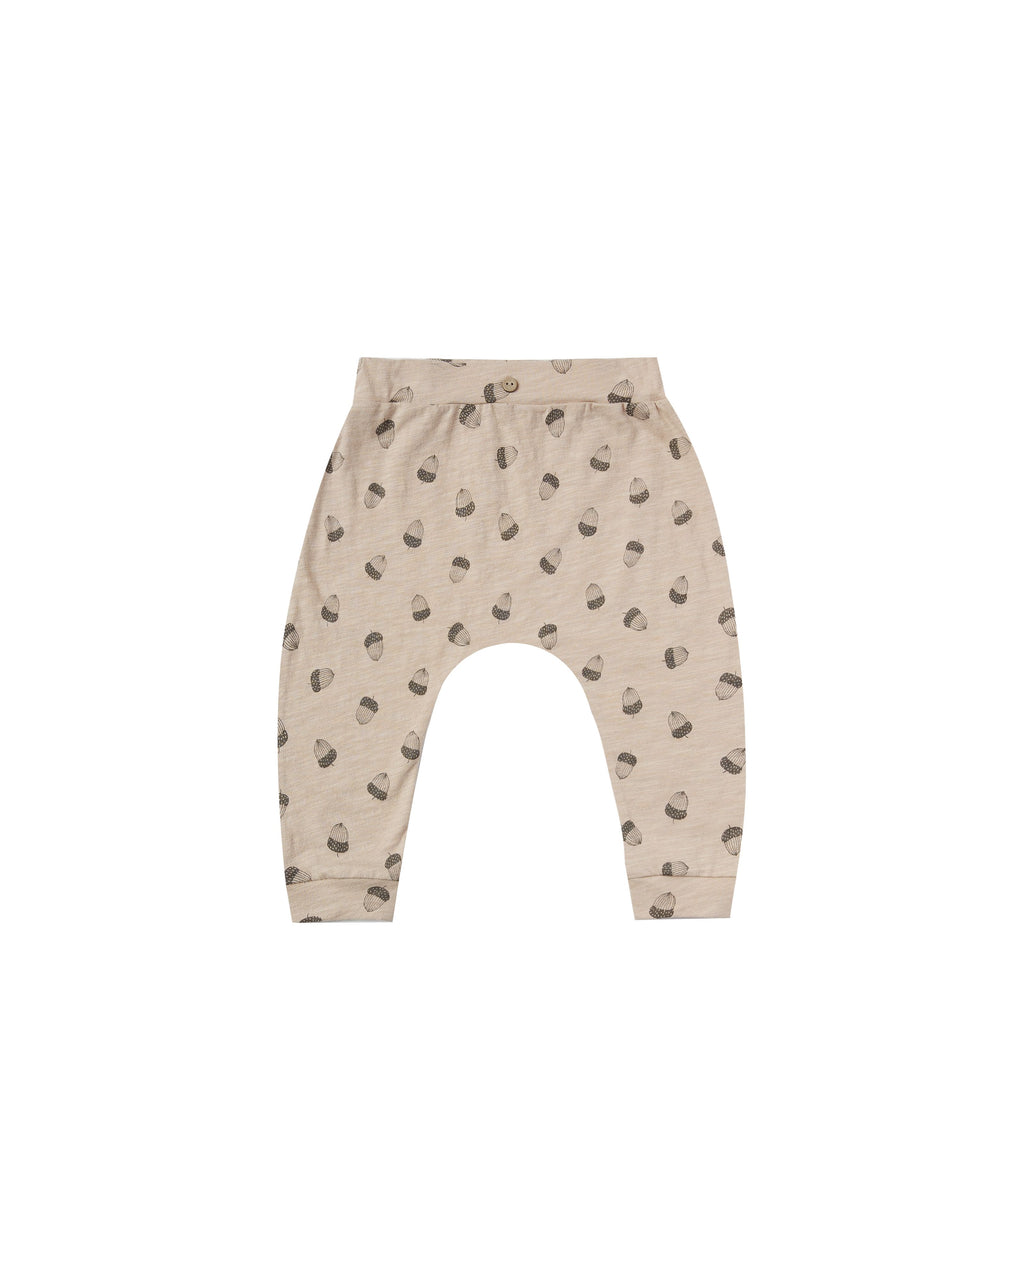 Rylee + Cru AW20- Acorn Slouch Pant- Oat